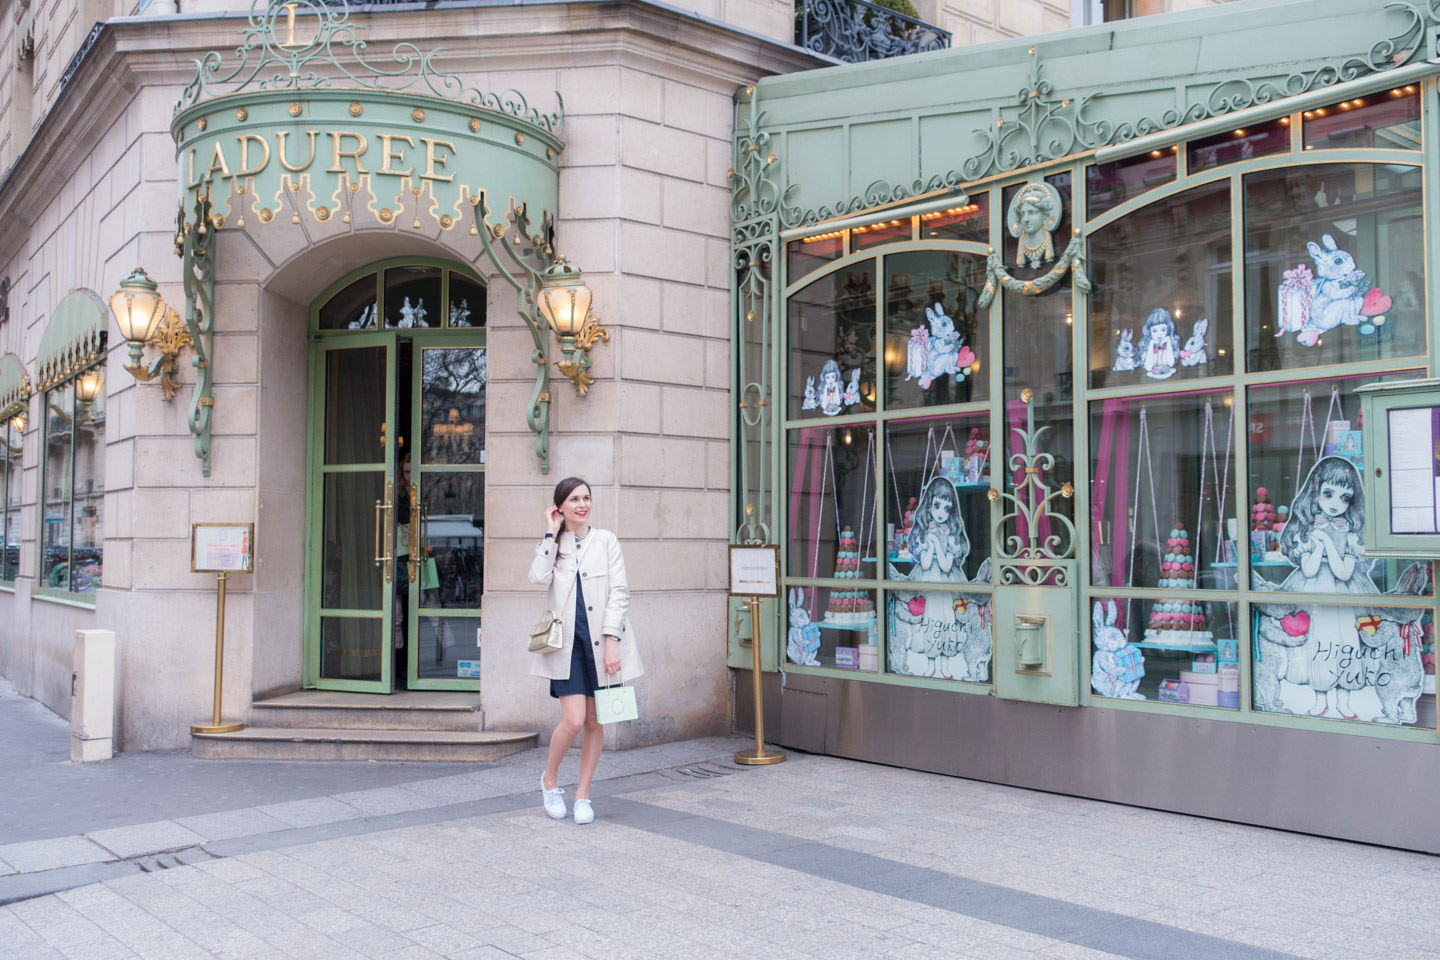 Blog-Mode-And-The-City-Lifestyle-paris-en-une-journee-laduree-3